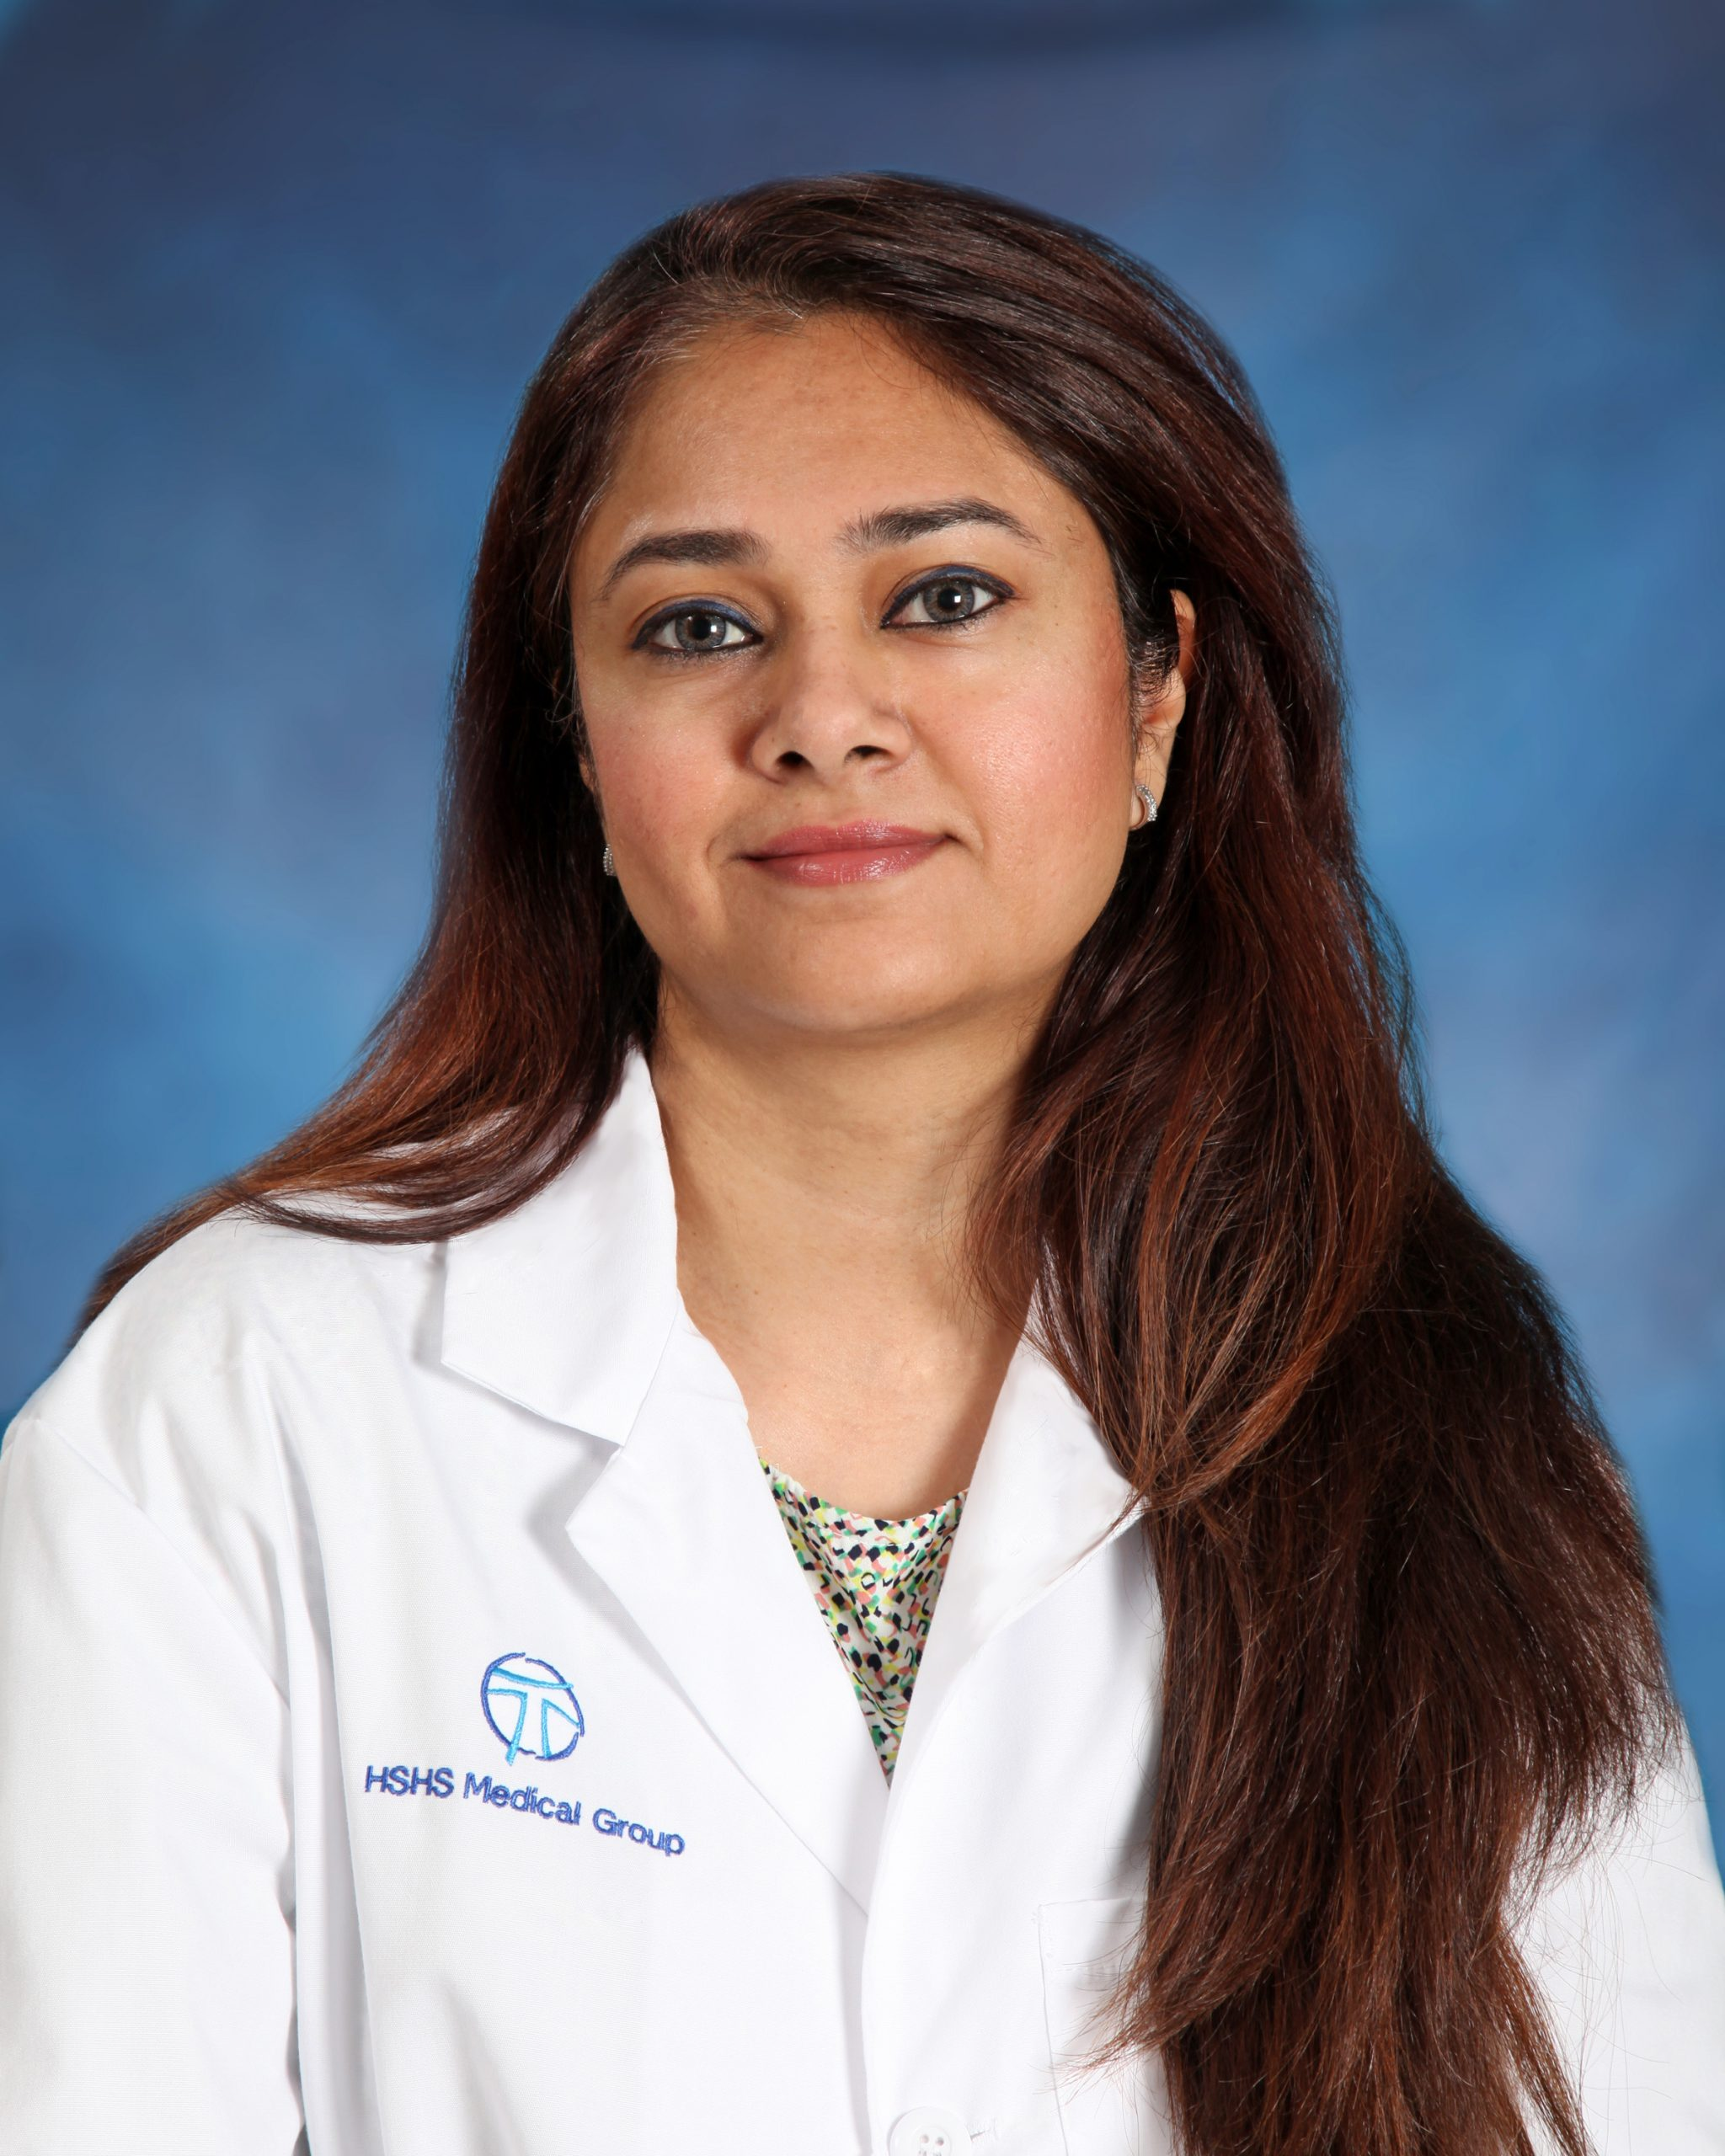 HSHS Medical Group Welcomes Sumbul Meraj, MD, Infectious Disease Specialist